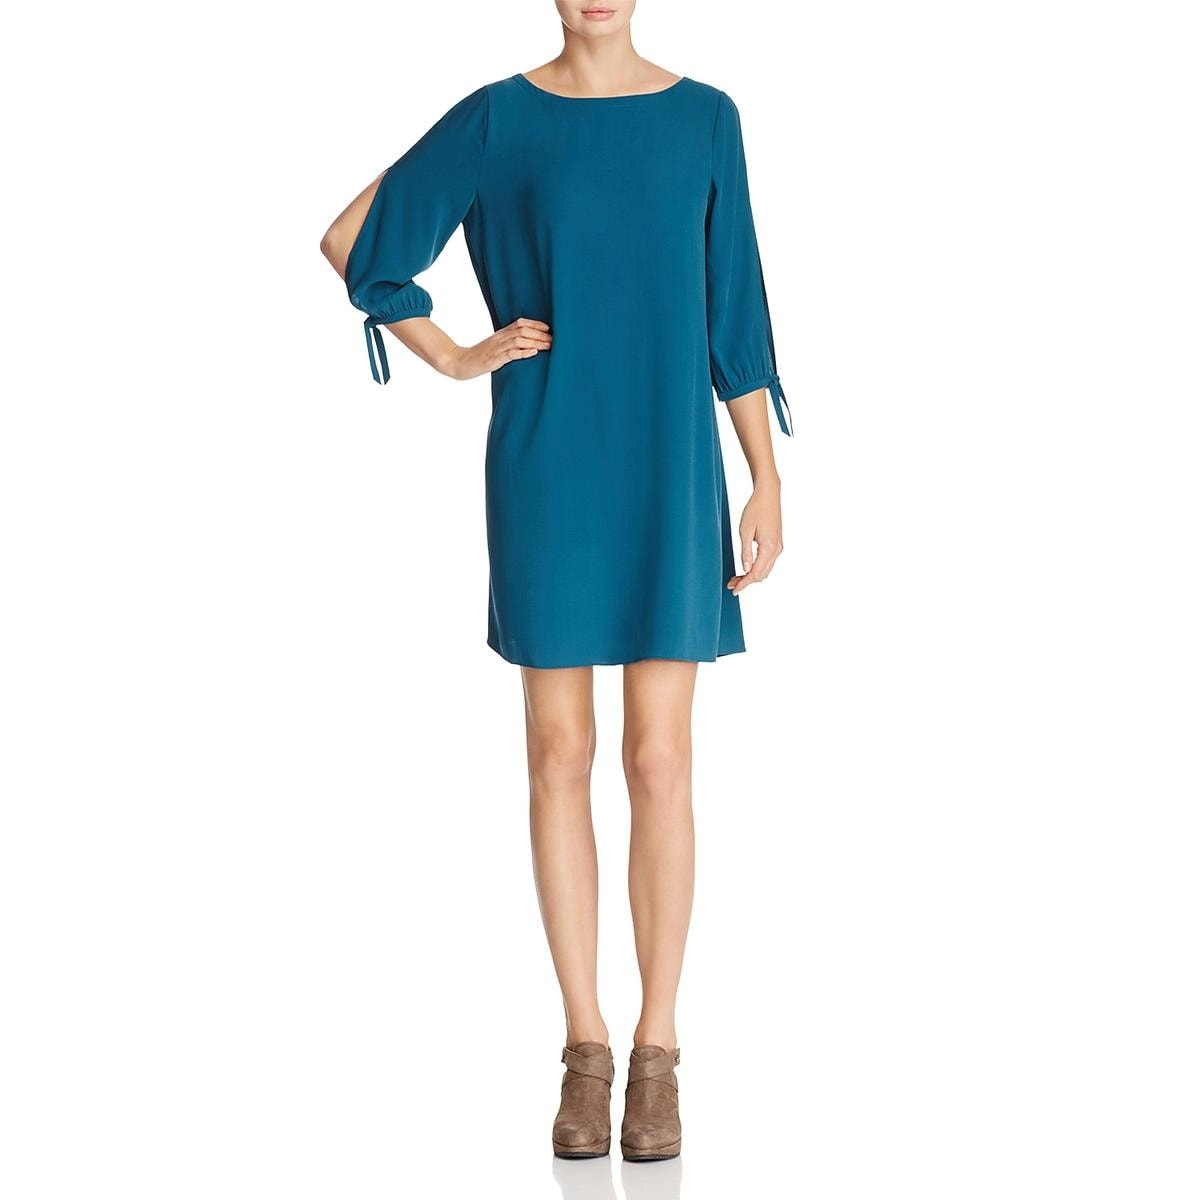 dc473395ad7 Shop Eileen Fisher Womens Petites Casual Dress Silk Bateau Neck ...